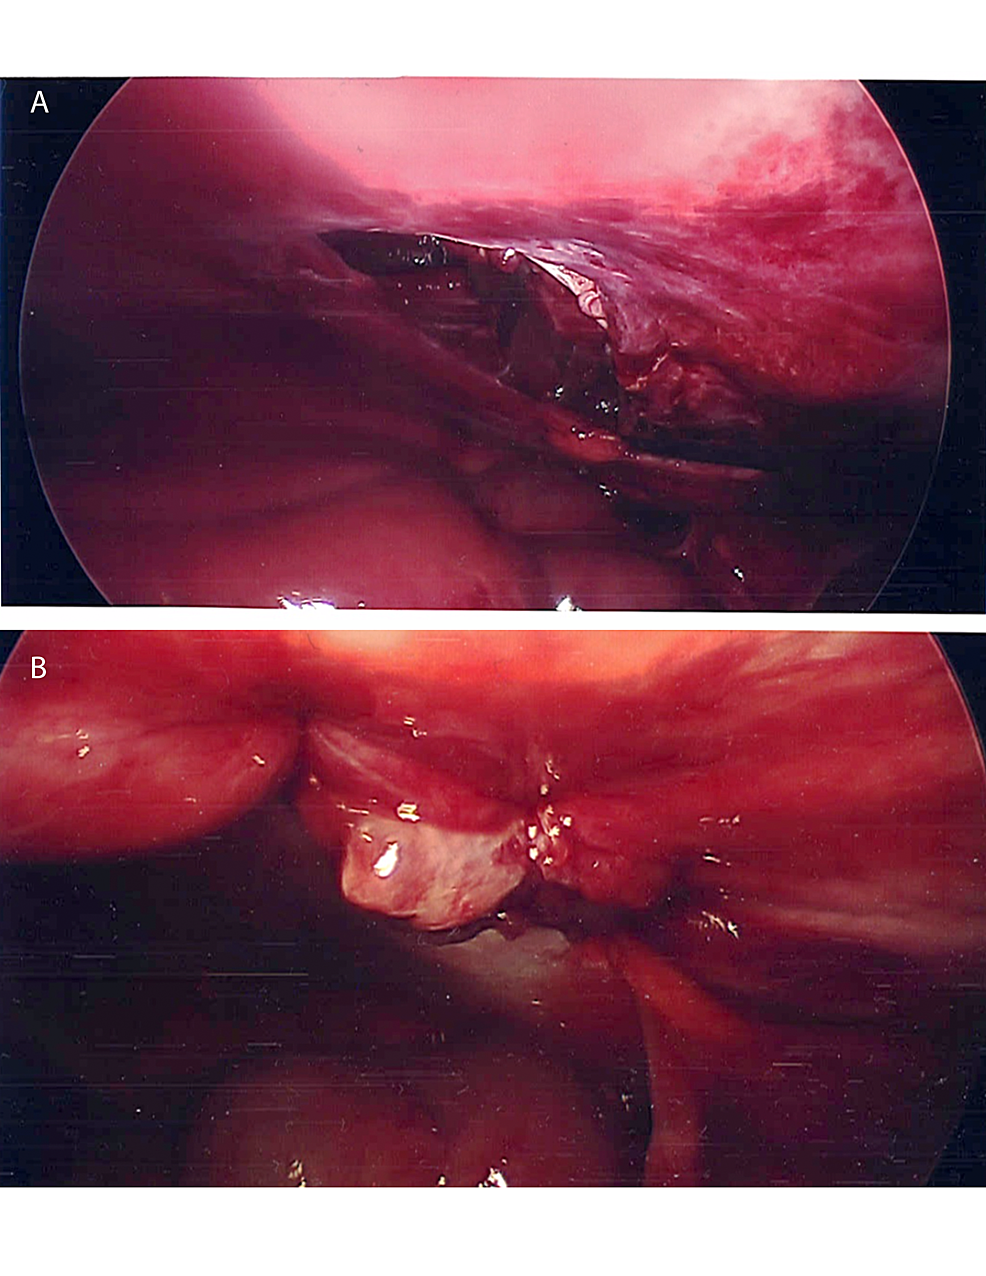 Laparoscopic-views-of-abdominal-wall-defect-(A)-before-closure-and-(B)-after-closure-with-interrupted-sutures-each-indicated-by-an-arrow.